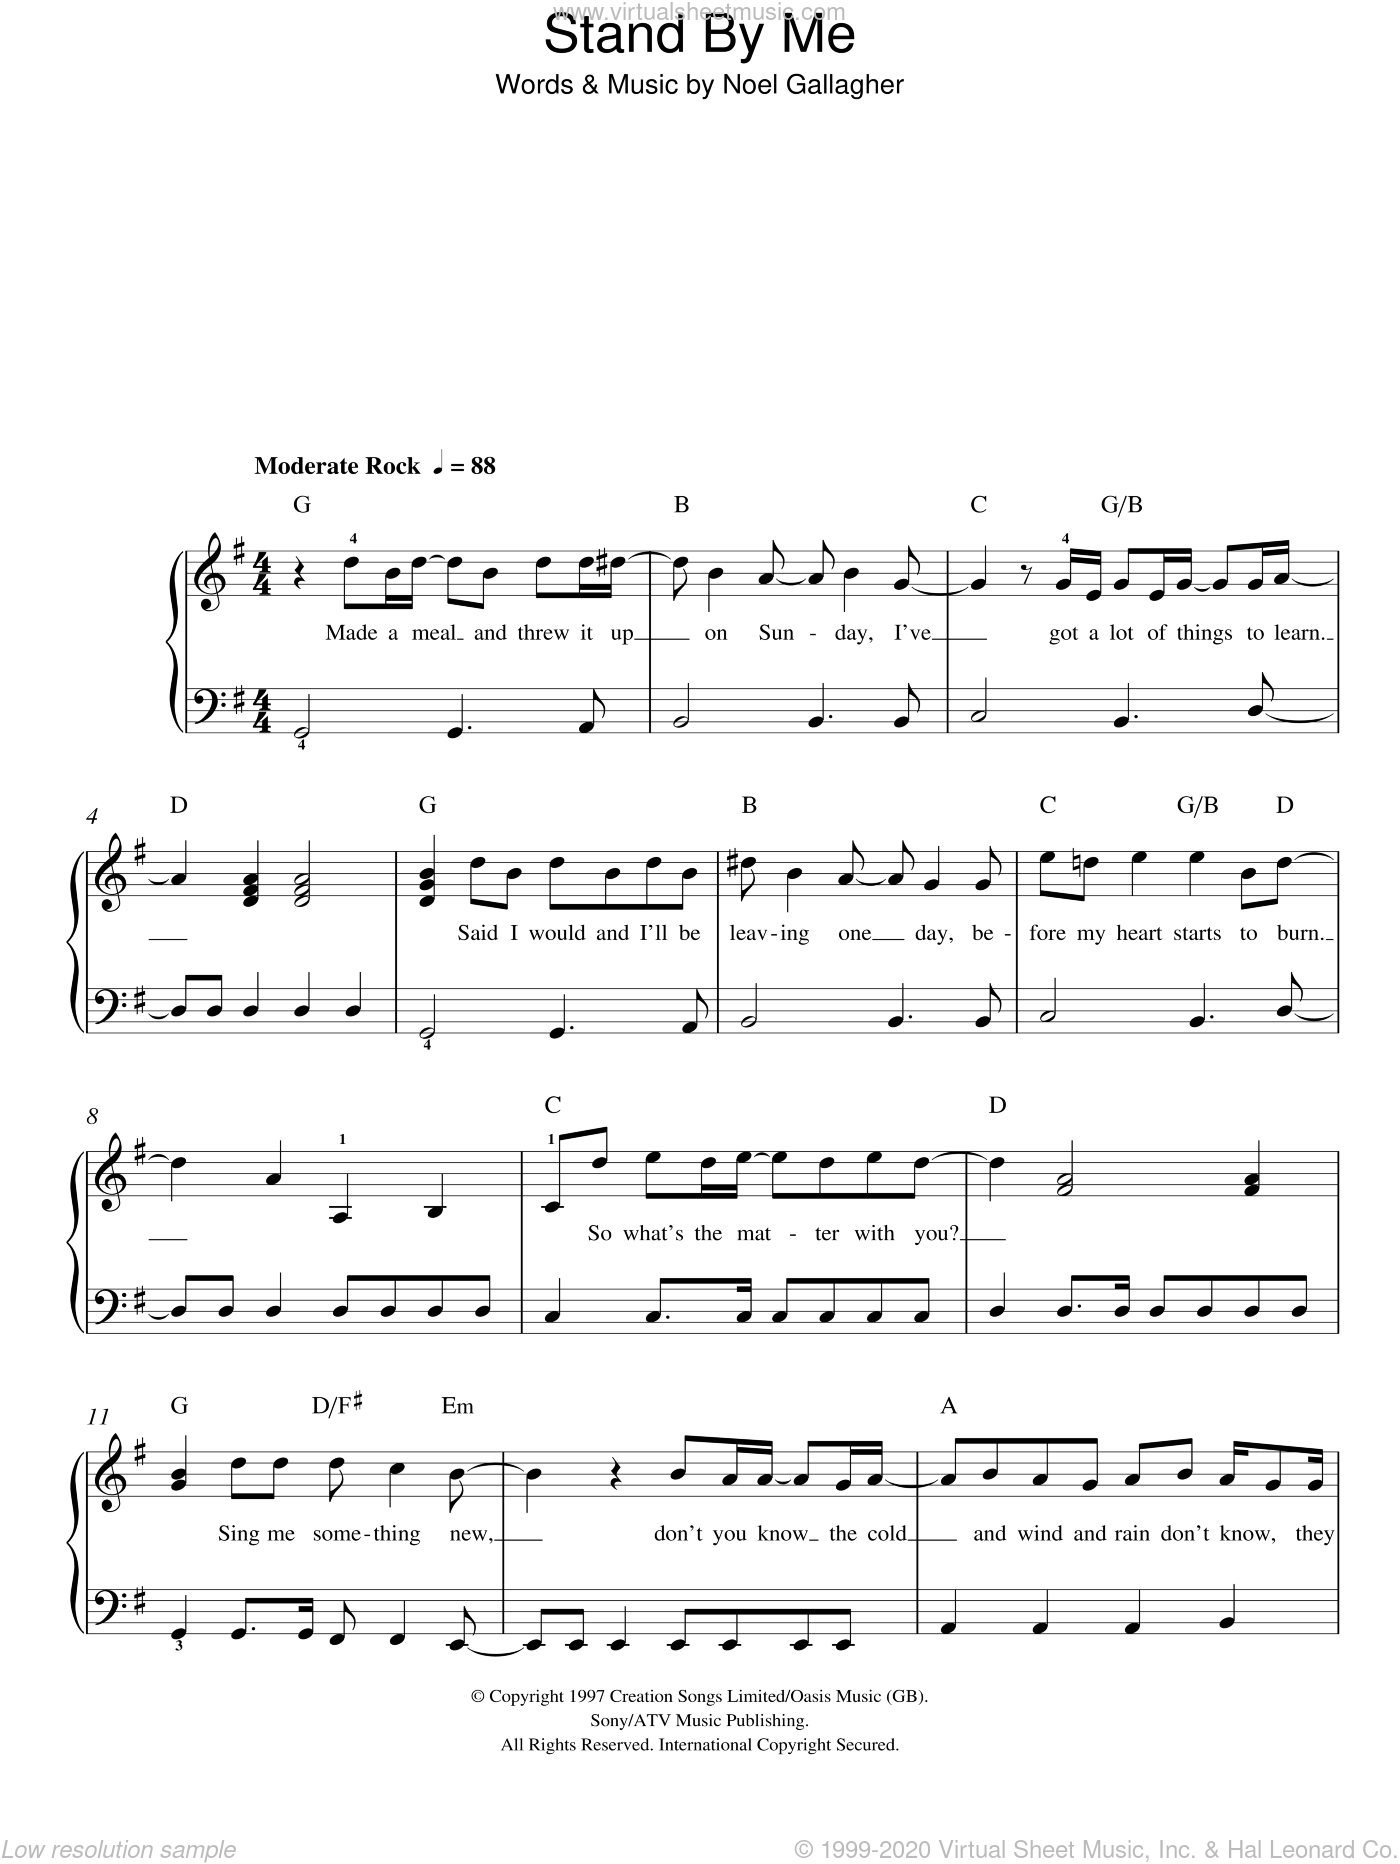 Stand By Me sheet music for piano solo (chords) by Noel Gallagher